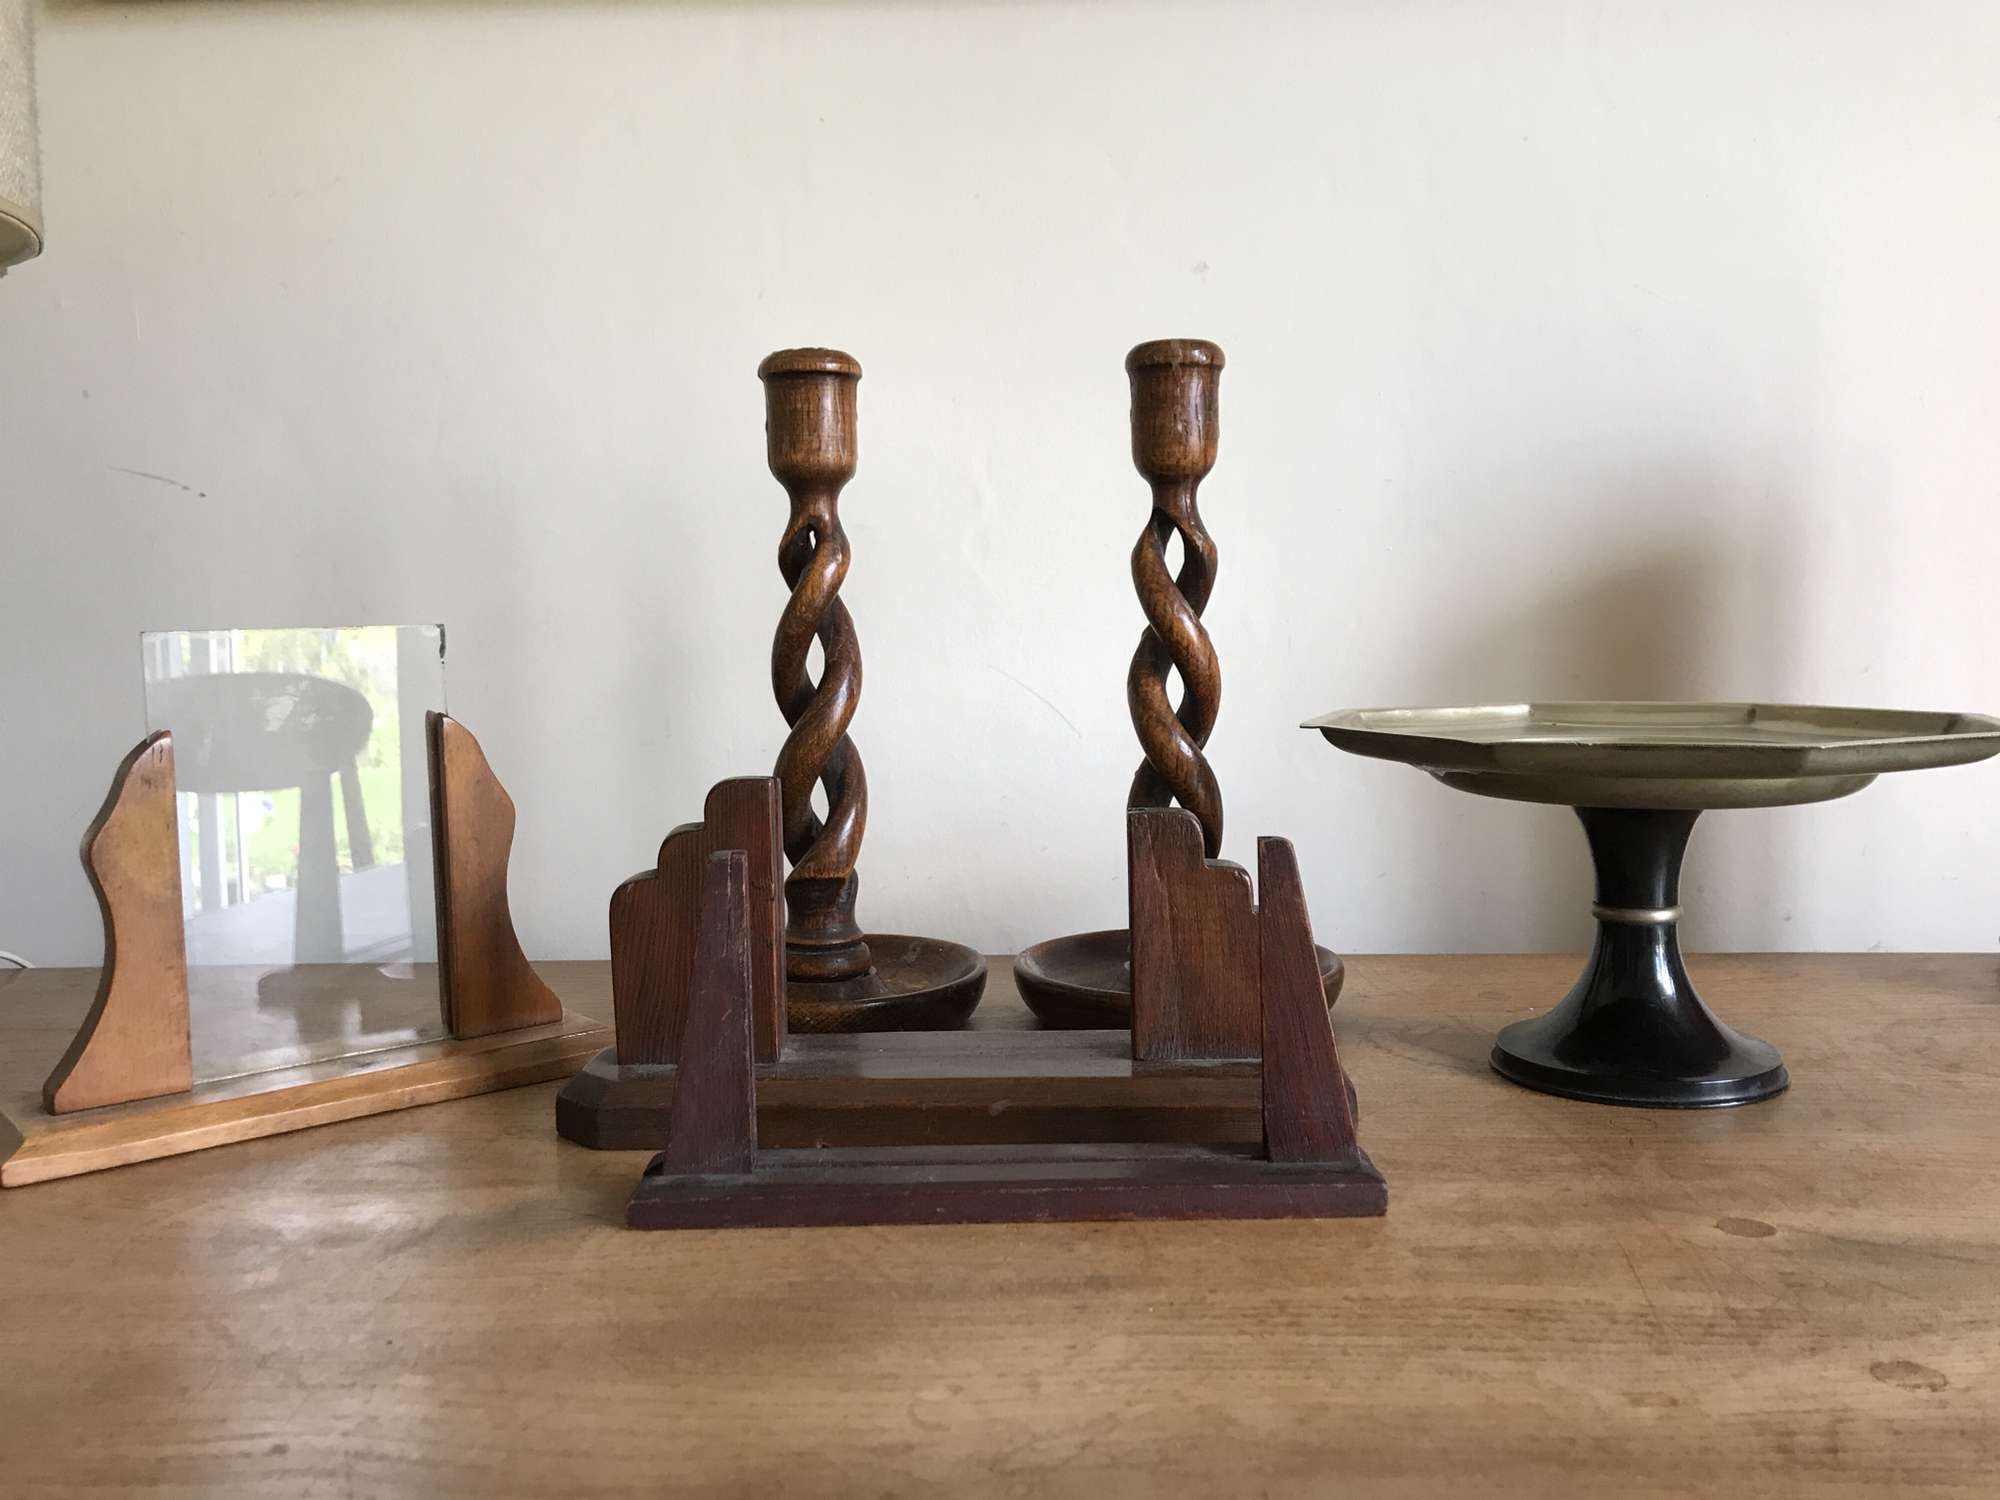 Set of items - High Wycombe, Bucks - Selling as a set or will consider splittingCandle sticks wooden vintage 8.00 the pair Vintage photo frames x3 . One with glass12.00Cake stand 10.00Total as a set 26.00 plus 5.00 postage - High Wycombe, Bucks